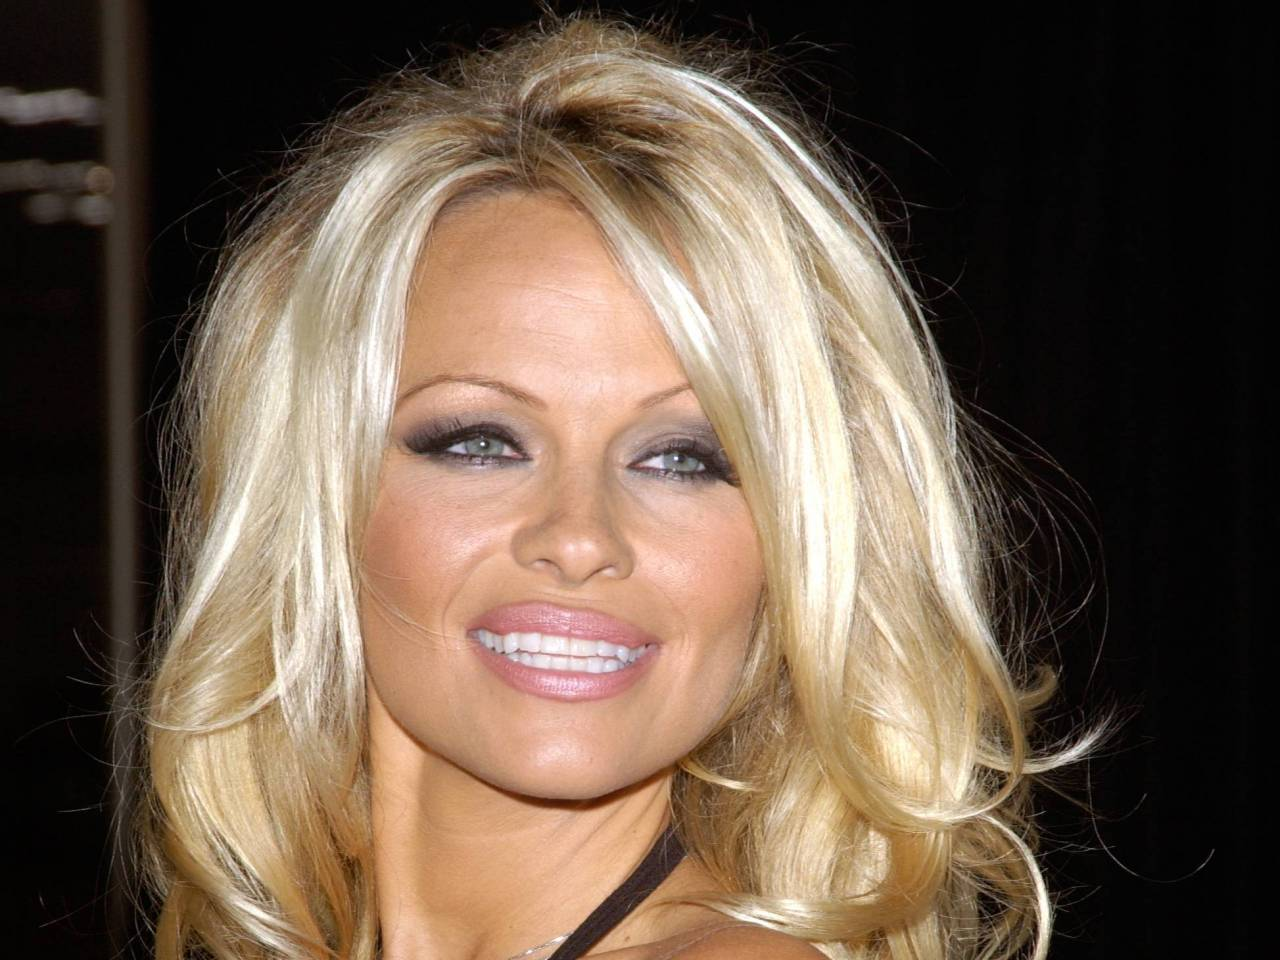 Pamela Anderson says Theresa May is the worst PM in living history